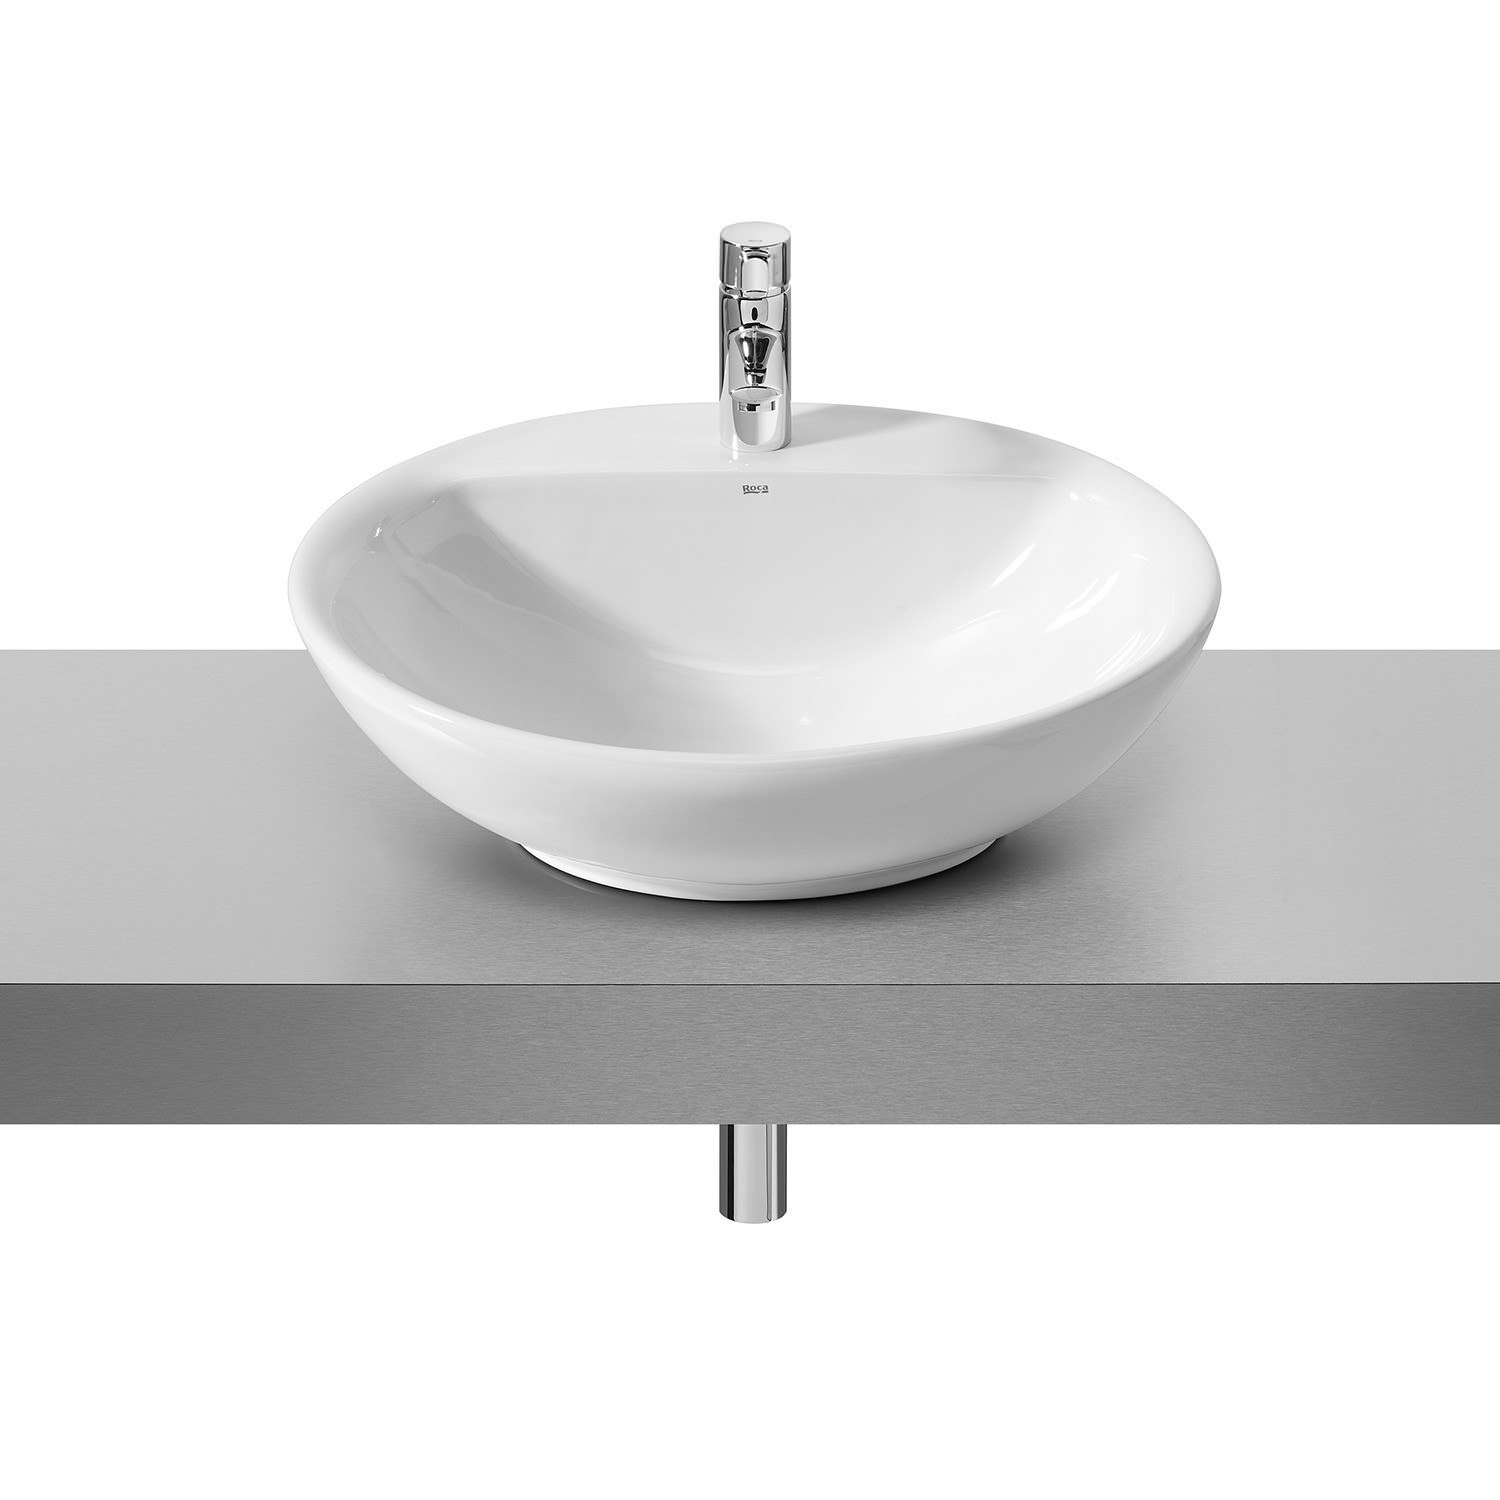 Roca Fontana White On Countertop Basin 600mm Wide 327877000